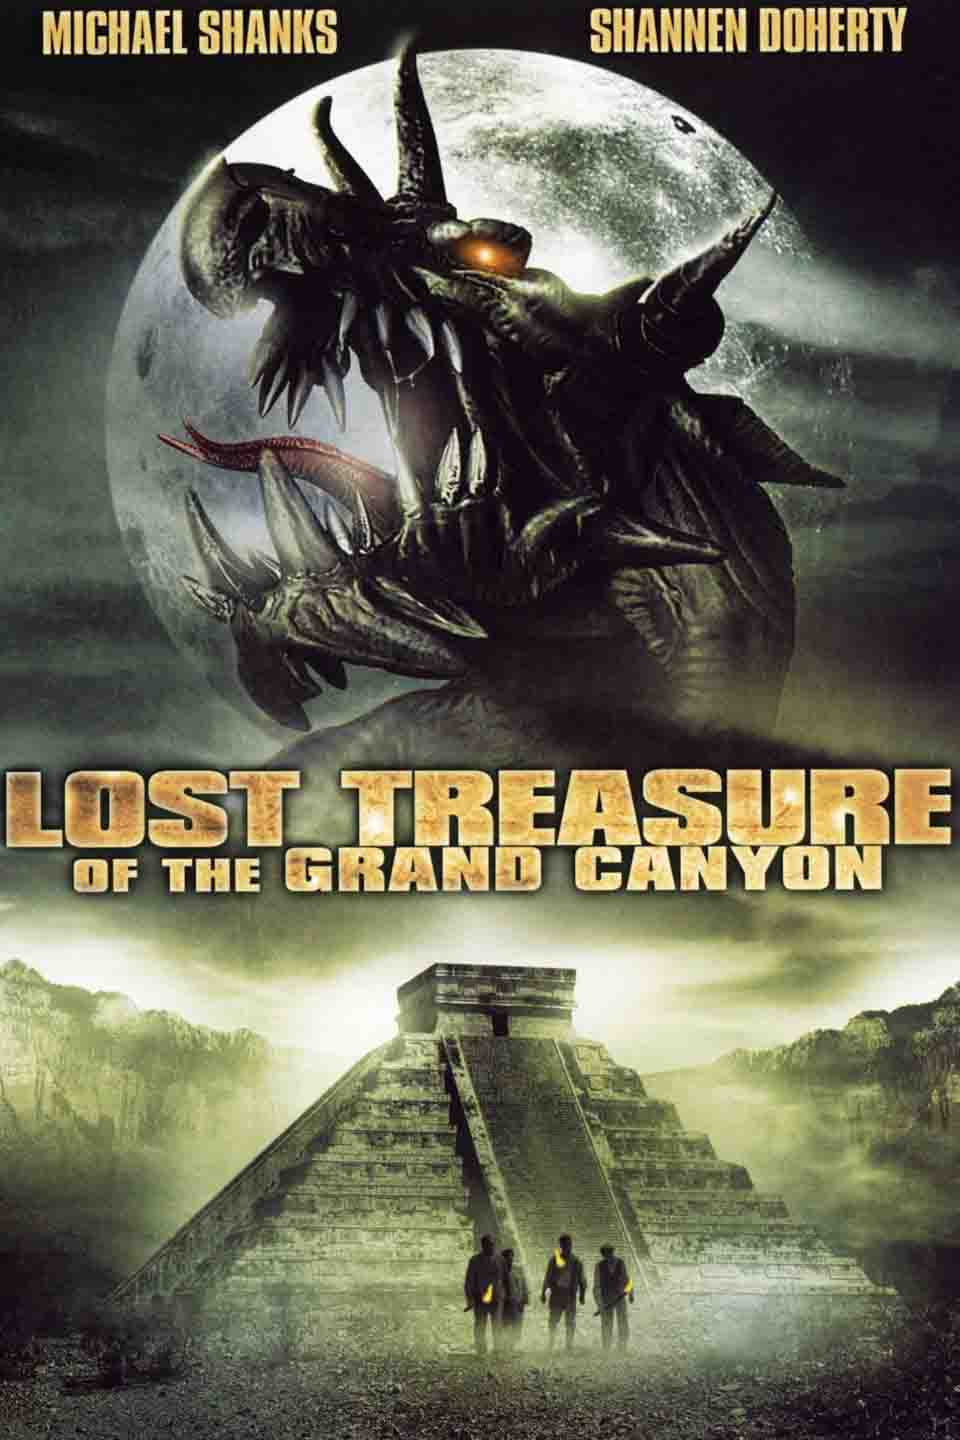 The Lost Treasure of the Grand Canyon-The Lost Treasure of the Grand Canyon